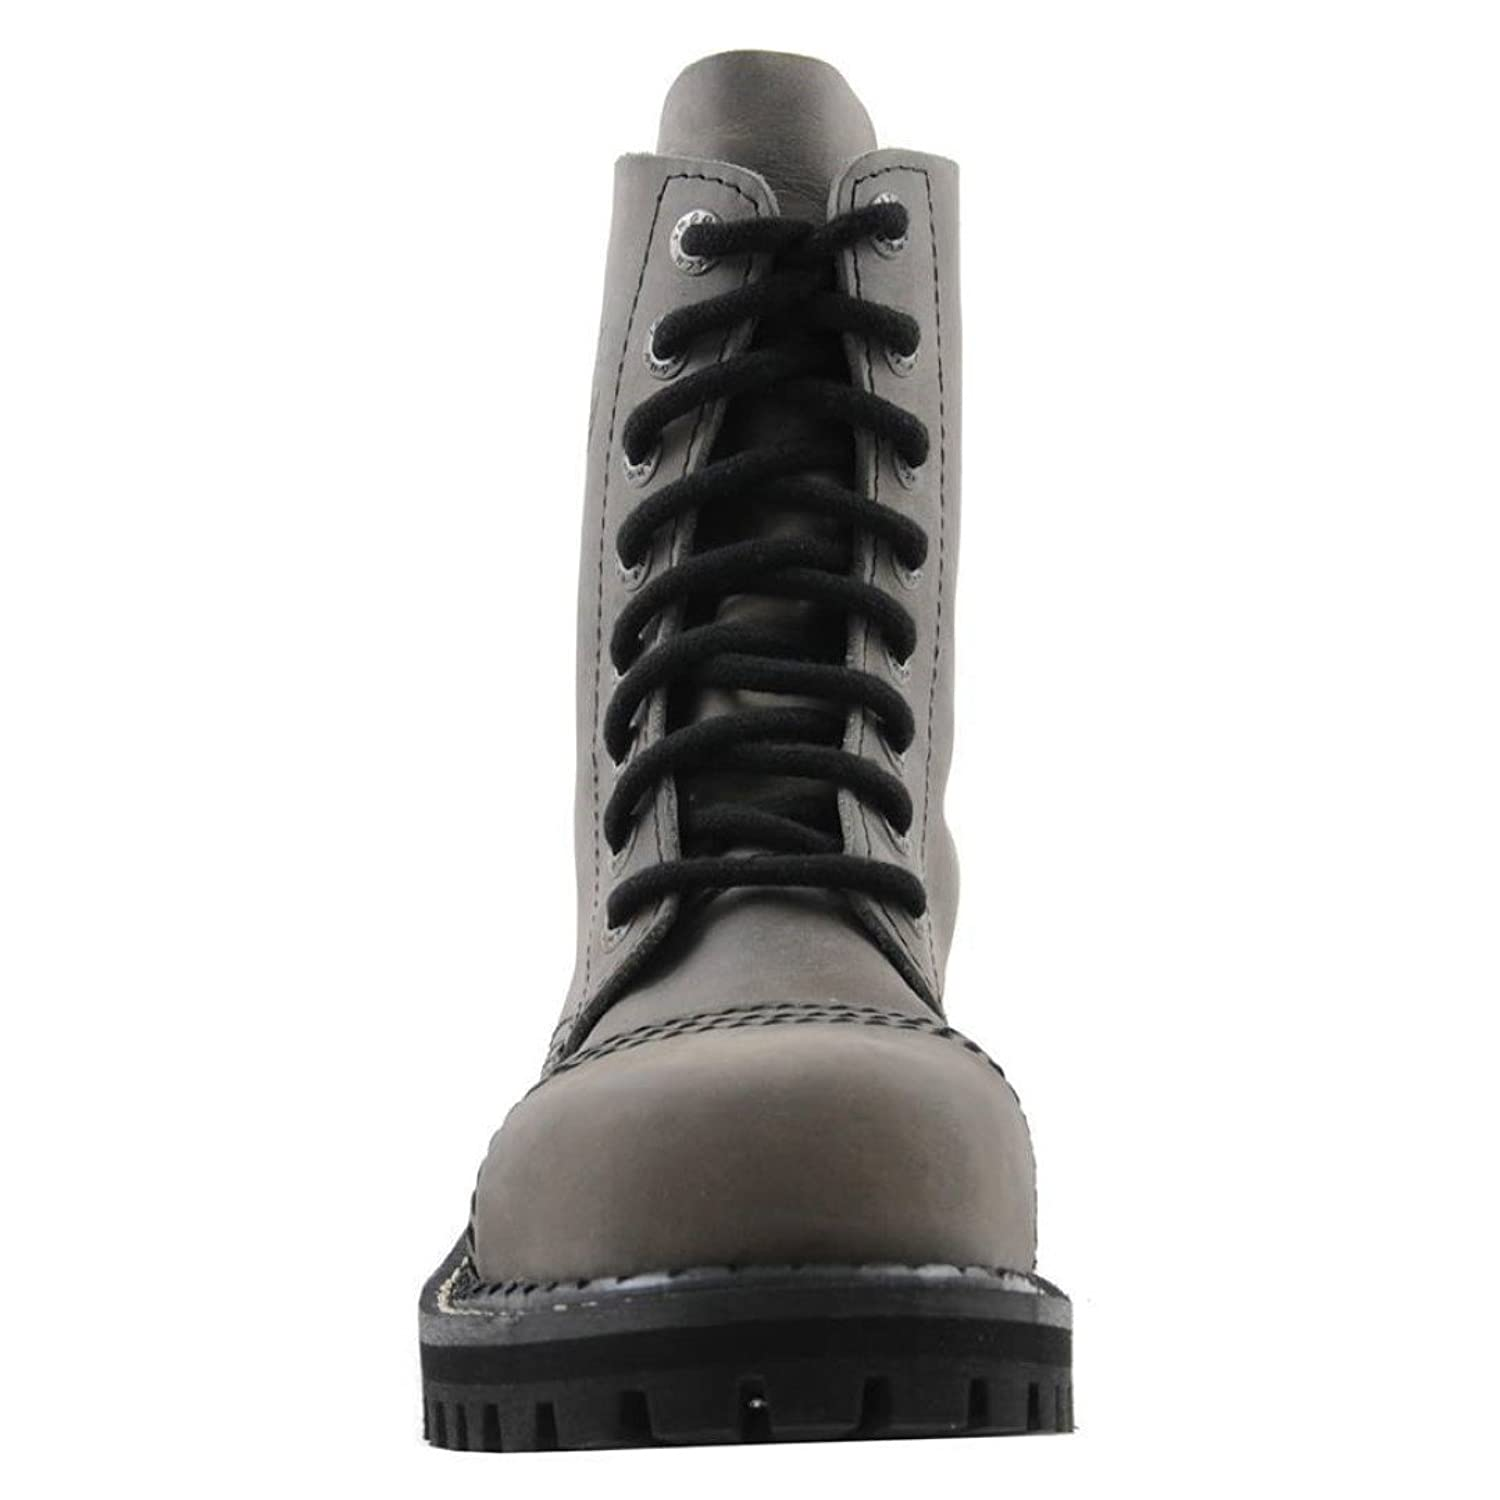 Angry Itch 8 Hole Gothic Punk Grey Leather Army Ranger Boot Steel Toe:  Amazon.co.uk: Shoes & Bags